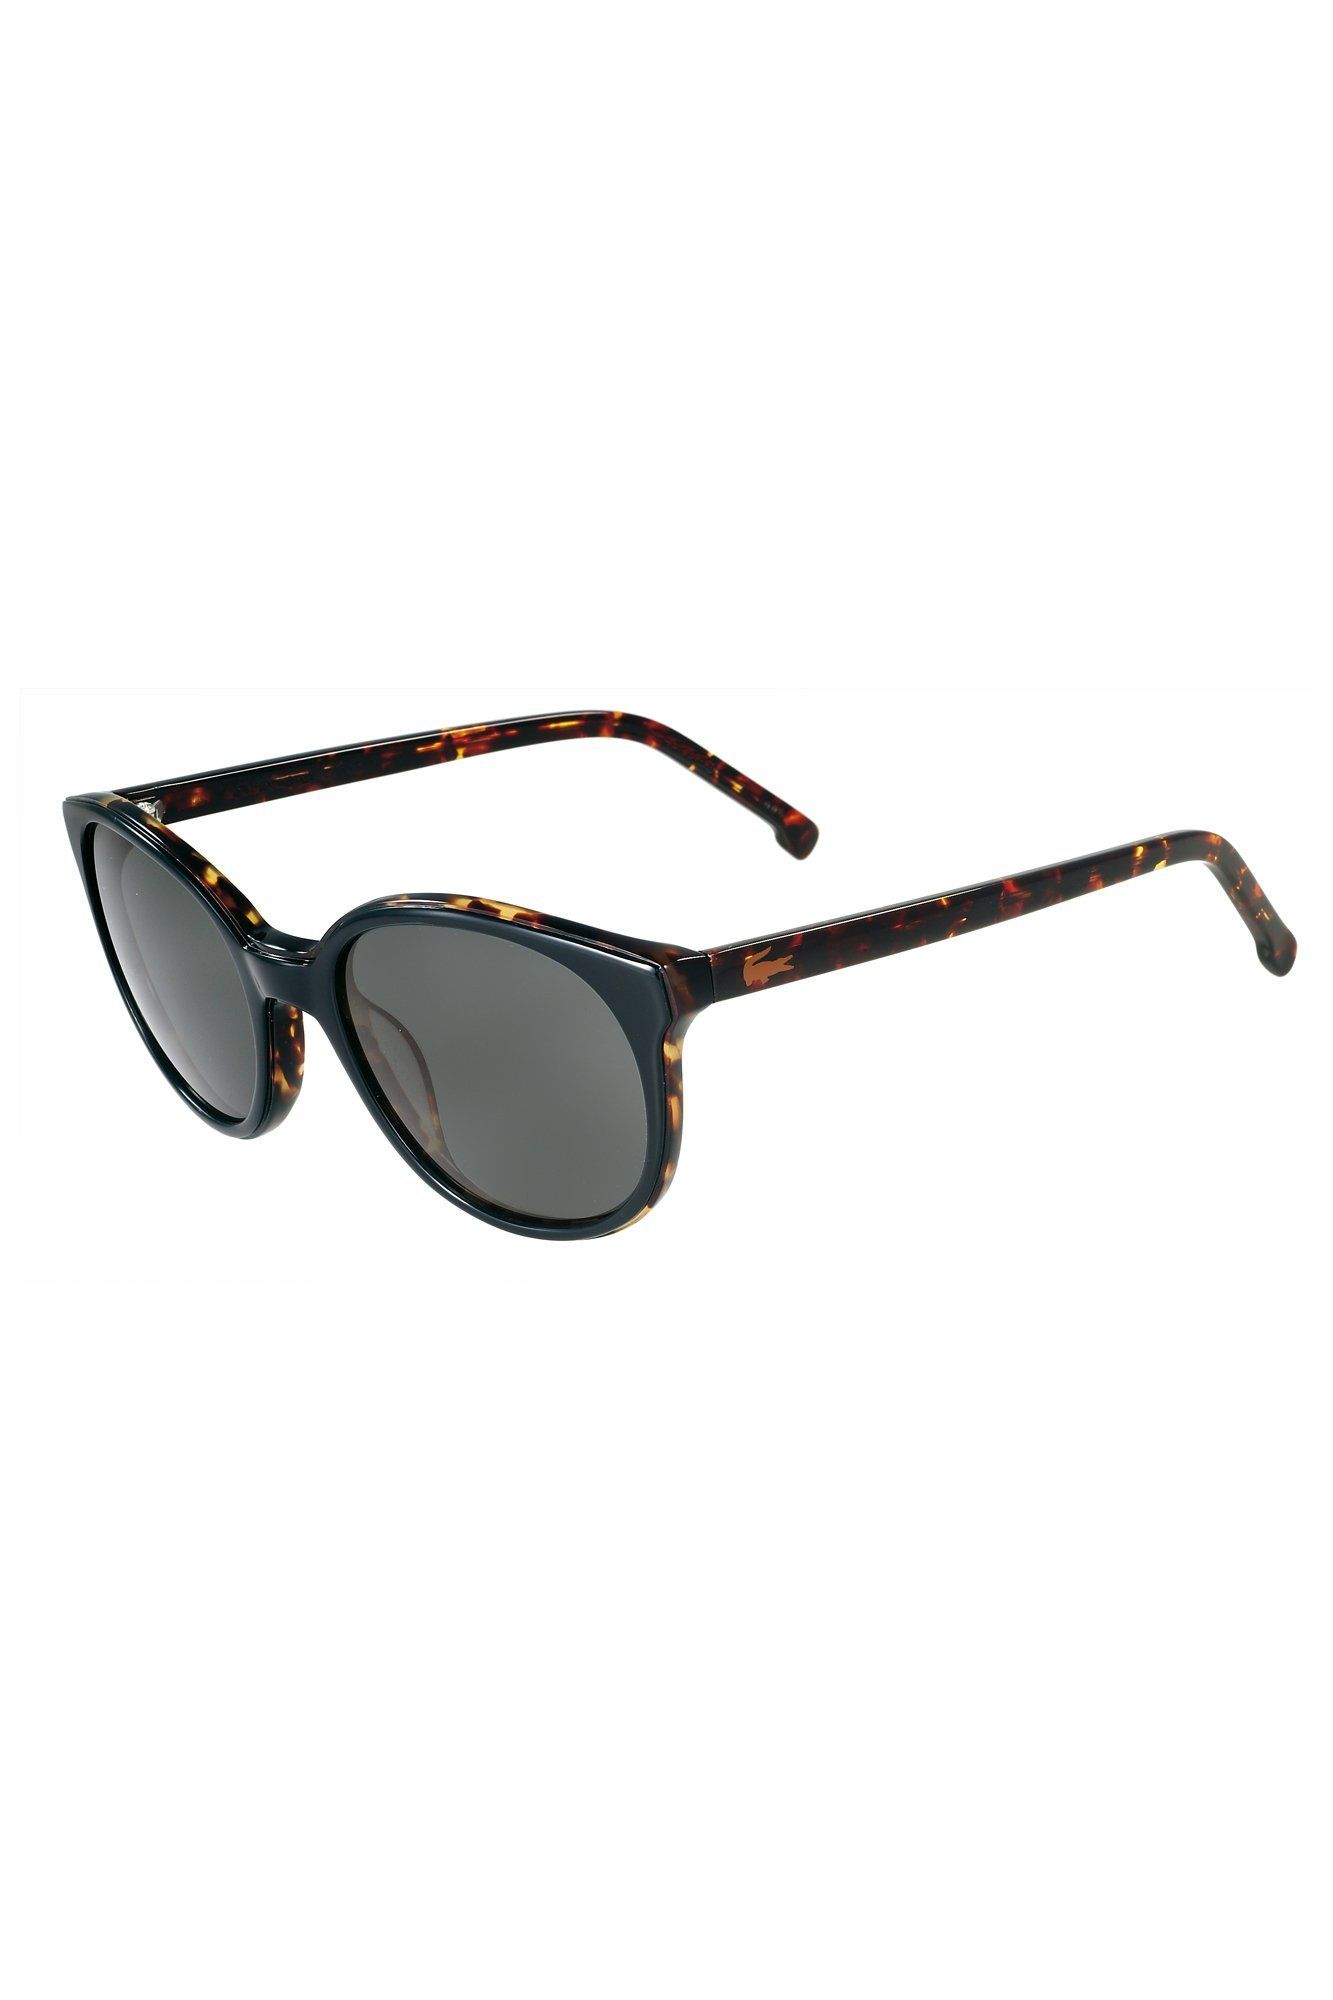 #Lacoste #sunglasses for #her